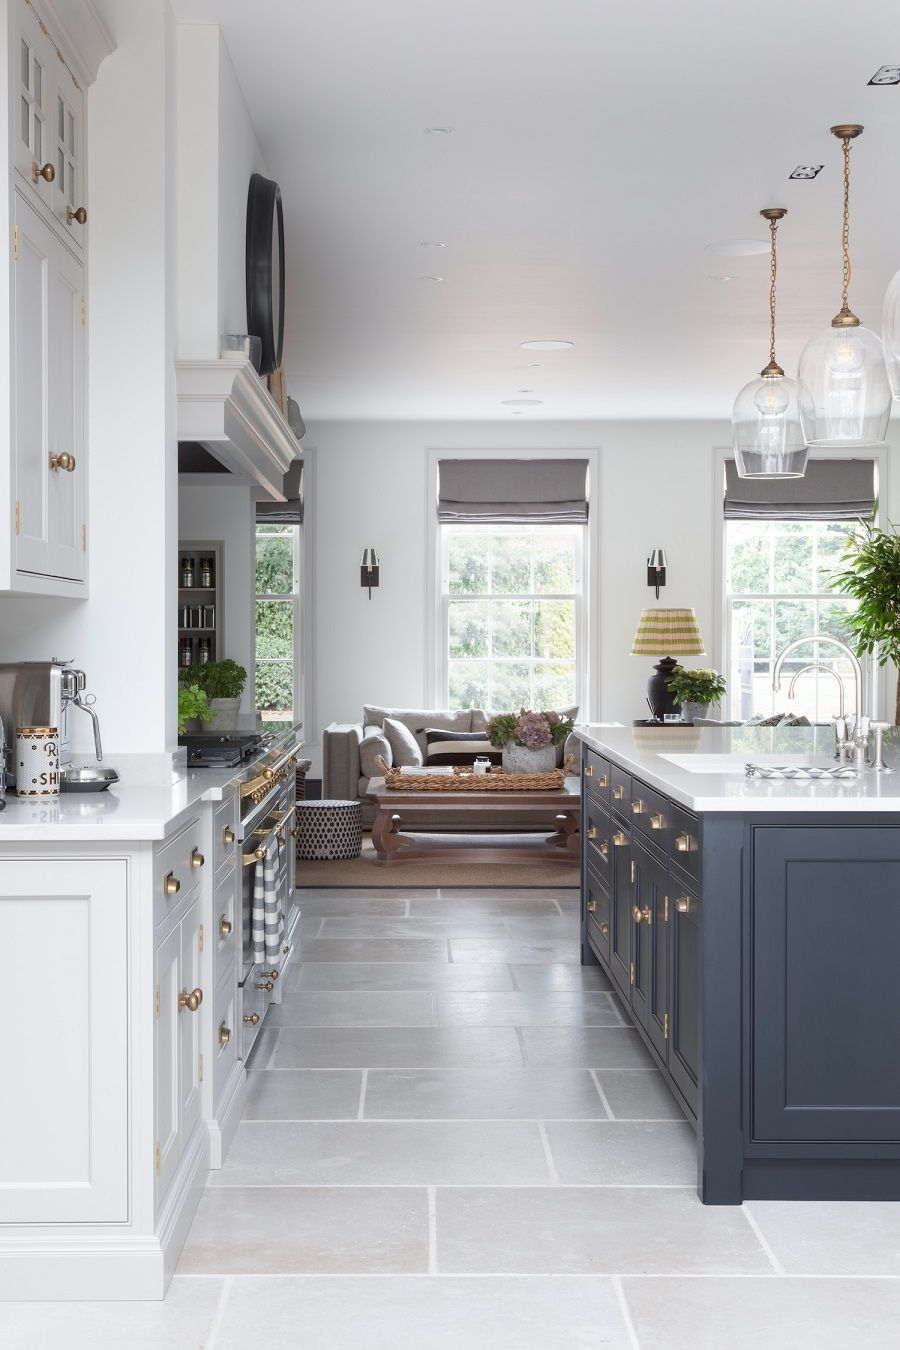 A Stunning Handmade Kitchen That is the Stuff of Dreams